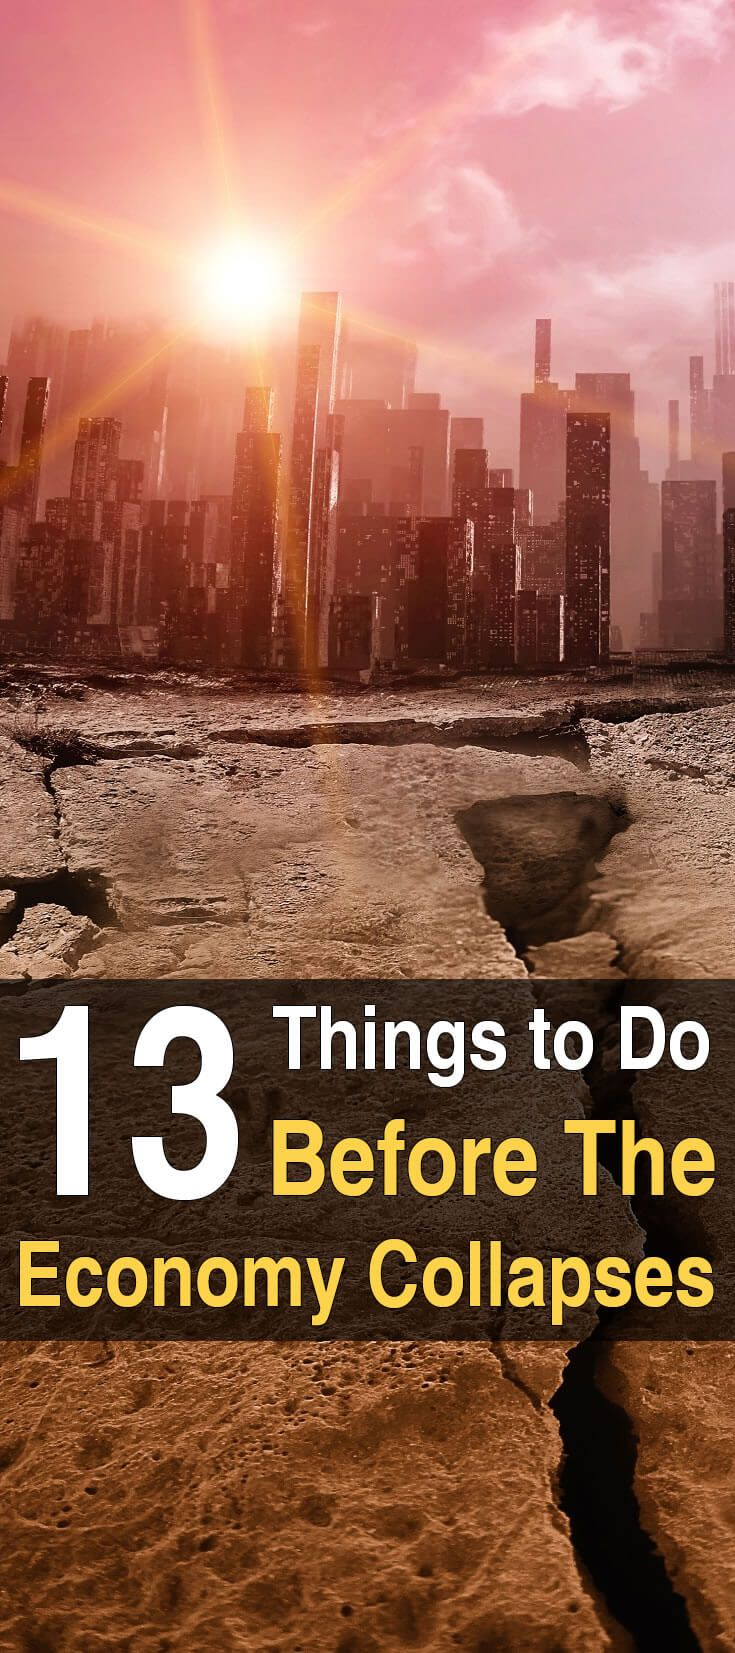 Funny pictures 141 clear desk policy - 13 Things To Do Before The Economy Collapses